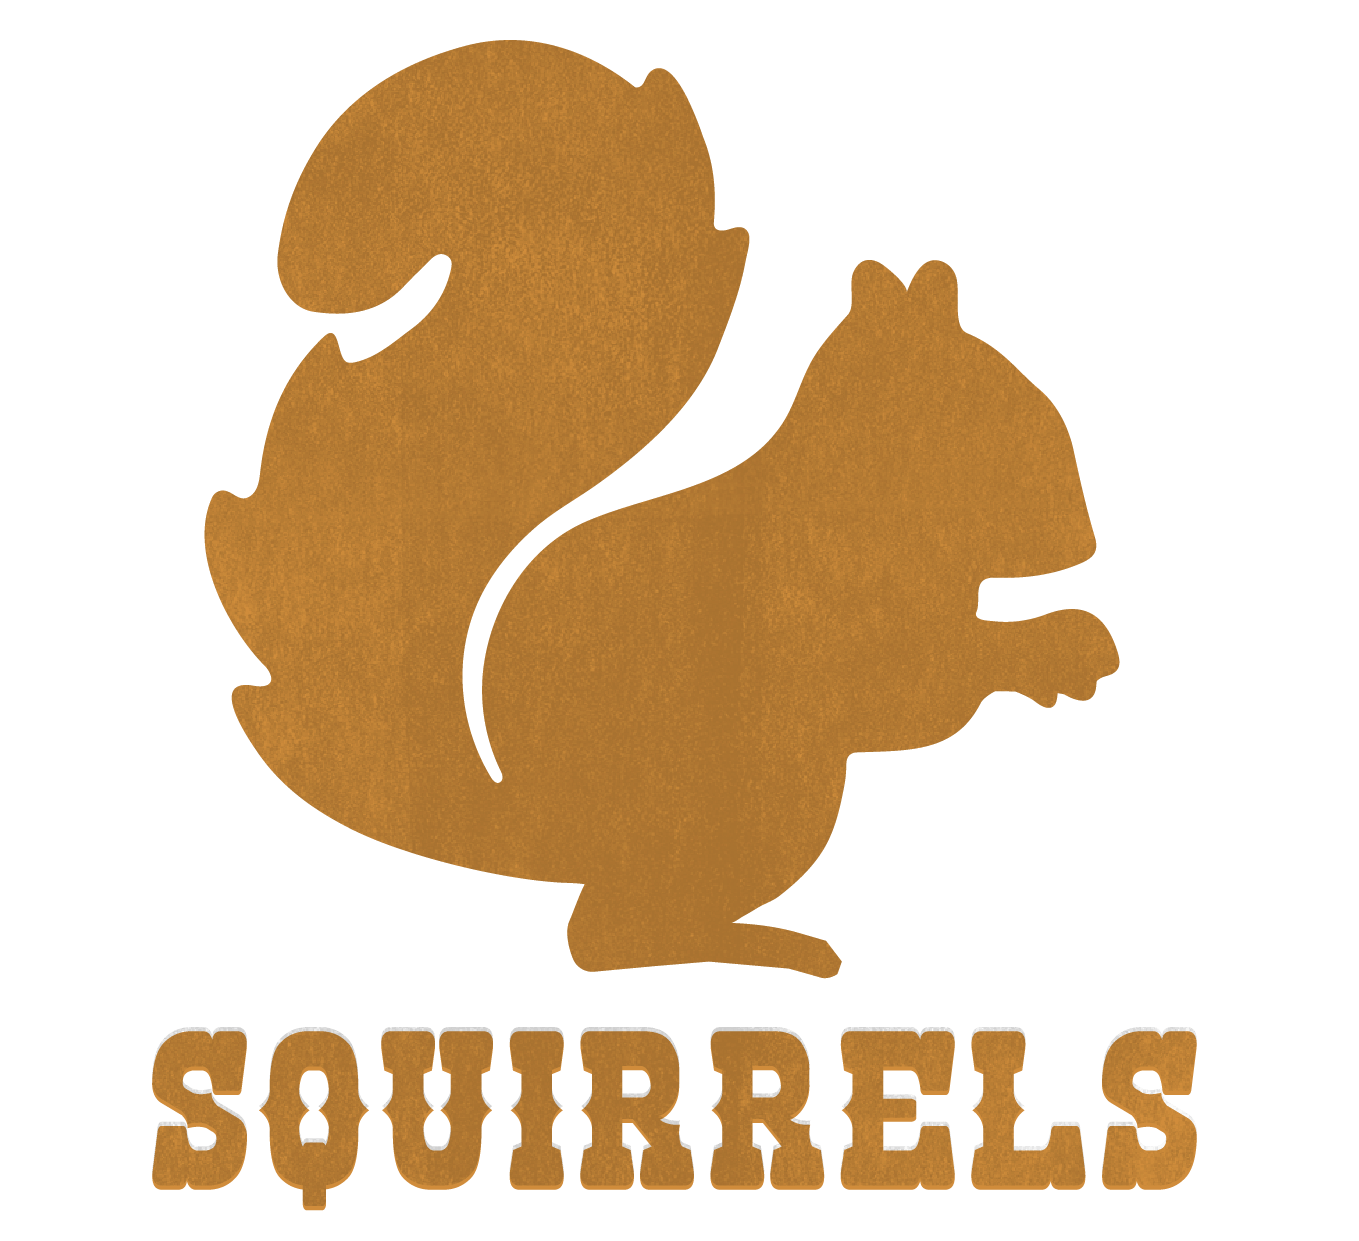 The squirrel logo at Camp Wildfire. A summer weekend break in a forest near London and Kent. An outdoor woodland retreat featuring adventure activities, live music, DJs, parties and camping. Half summer adventure activity camp, half music festival, for adults only.